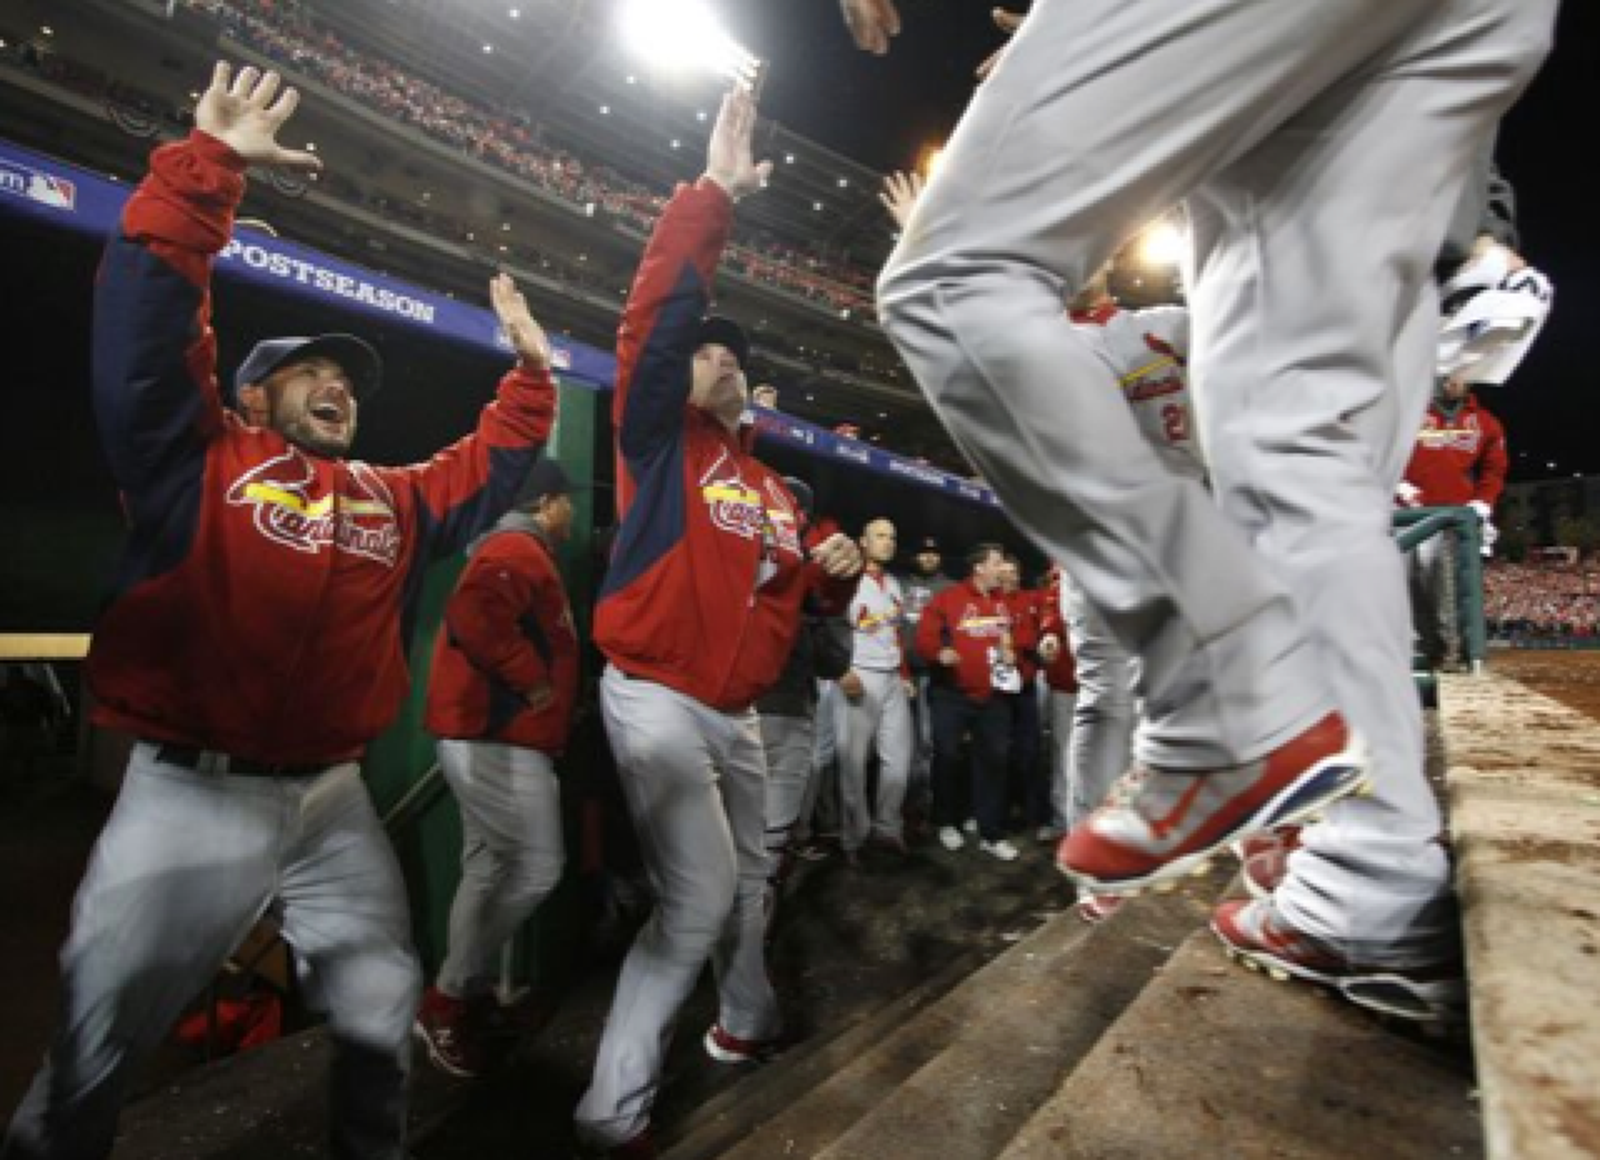 Cardinals' Skip Schumaker (left) and manager Mike Matheny (center) congratulate Carlos Beltran (foreground right) after Beltran and Adron Chambers both scored on a single by Daniel Descalso to tie the game in the ninth inning during Game 5 of the National League Division Series between the St. Louis Cardinals and the Washington Nationals on Friday, Oct. 12, 2012, at Nationals Park in Washington, D.C. Photo: Chris Lee, Post Dispatch / AP  Read more: https://www.sfgate.com/sports/article/Cardinals-Giants-each-pulled-off-remarkable-rally-3946159.php#ixzz29JsQ0k6G